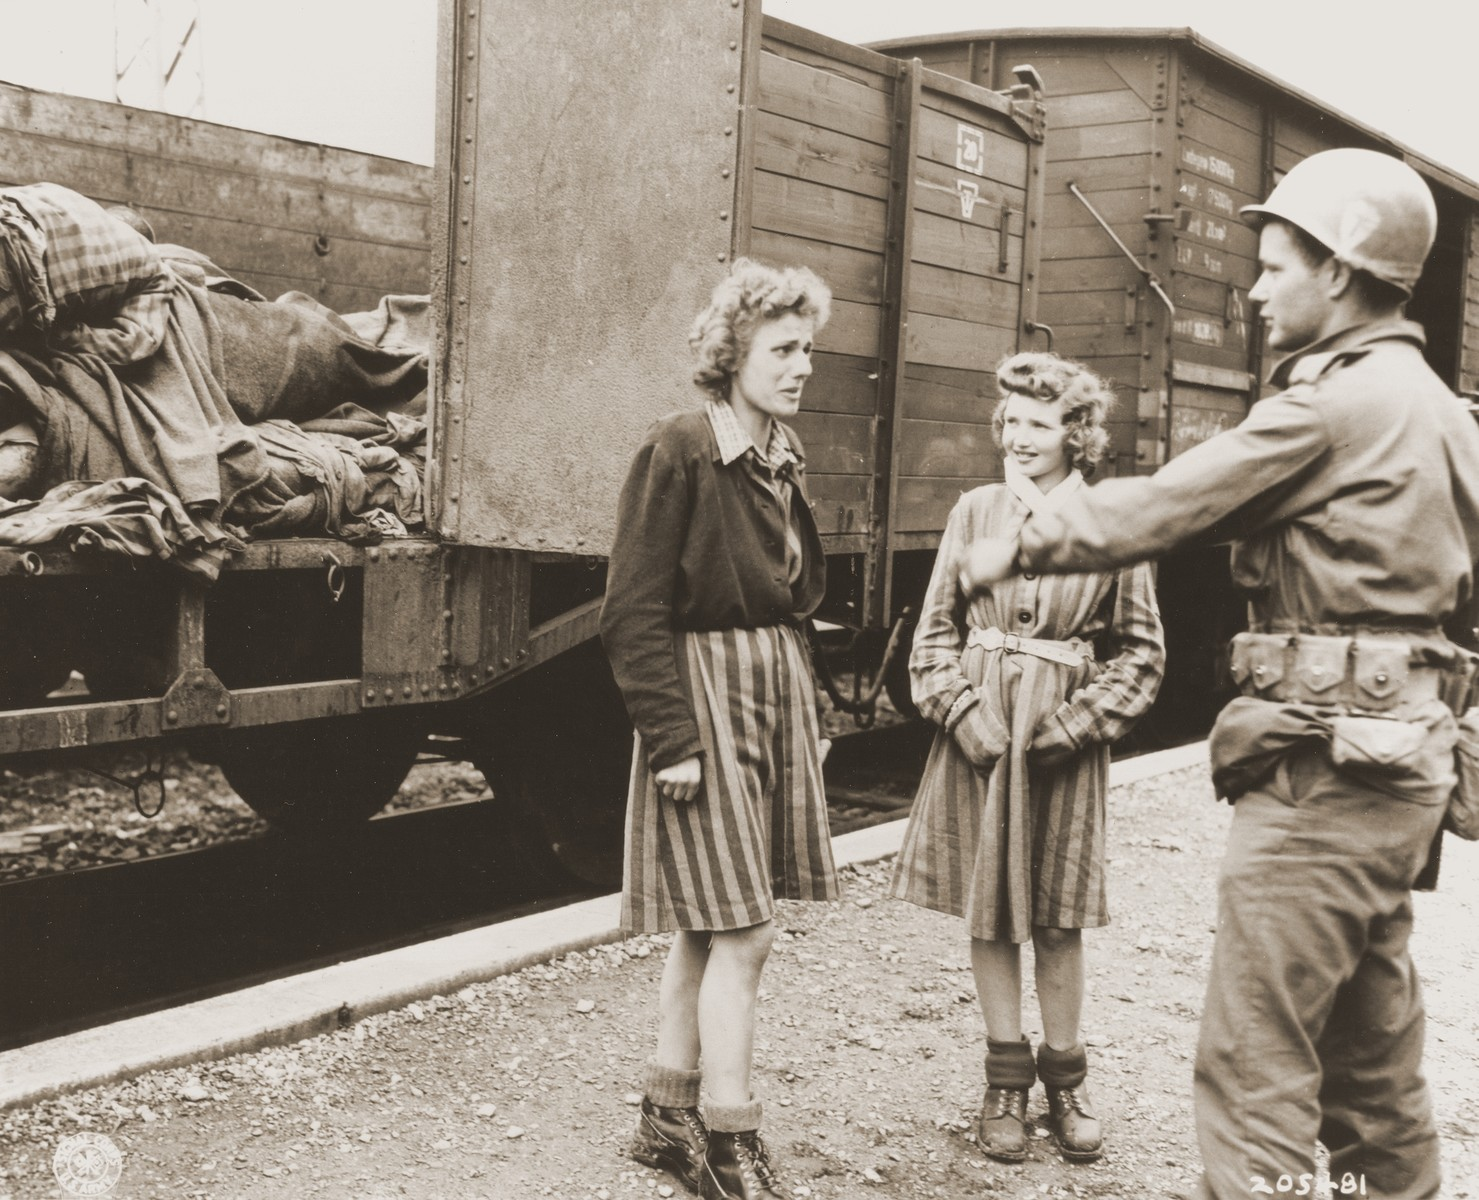 Pfc. Andrew E. Dubill speaks with two Jewish girls who were held prisoner by the SS.    The railroad cars in the background contain the bodies of prisoners who died while on an evacuation transport presumably headed for Dachau concentration camp.